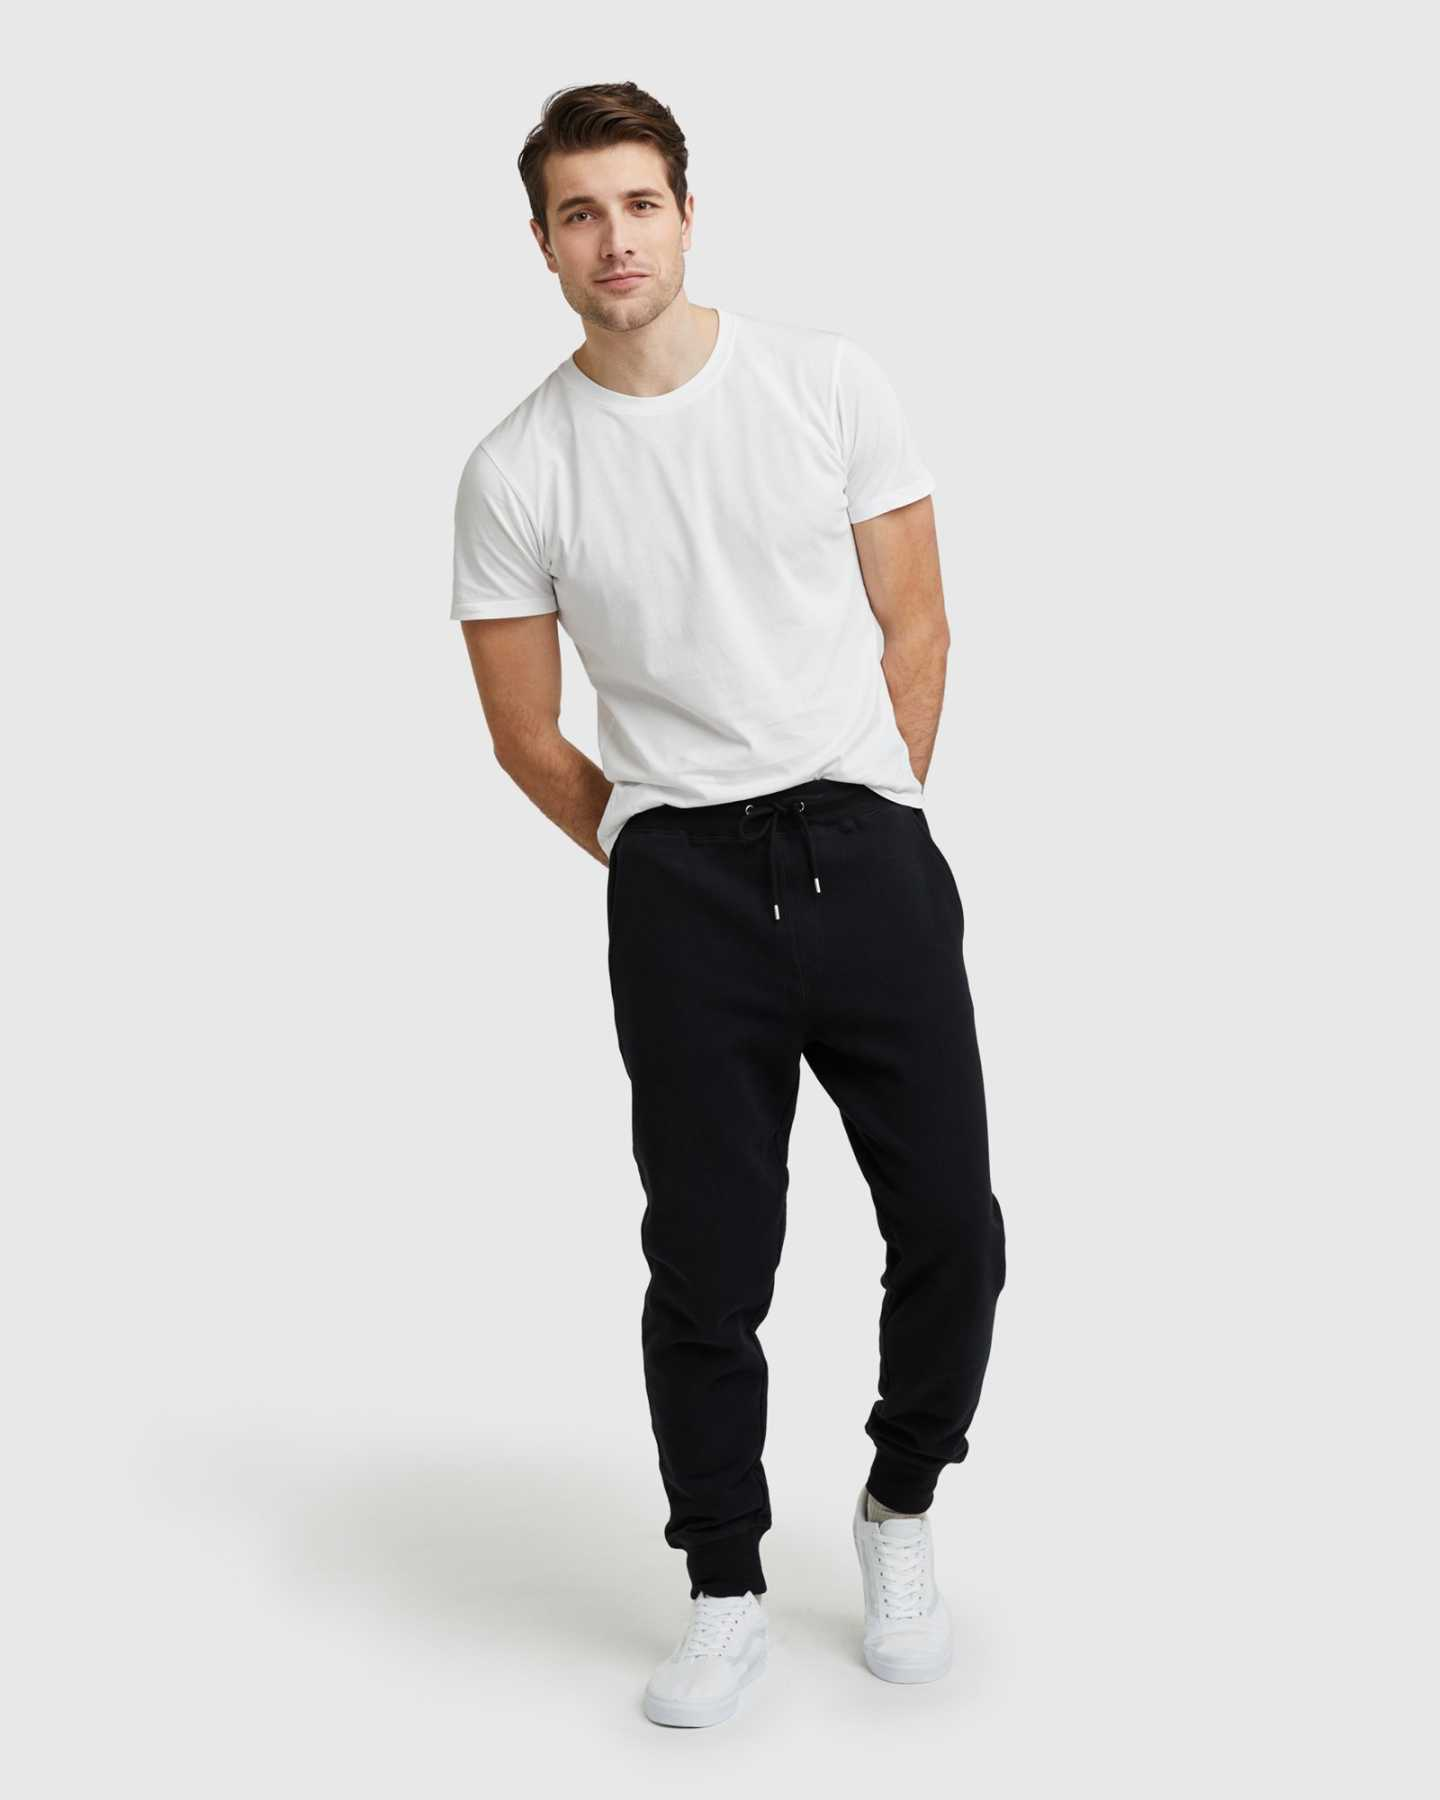 Man wearing 100% organic cotton heavyweight sweatpants in black and white tee